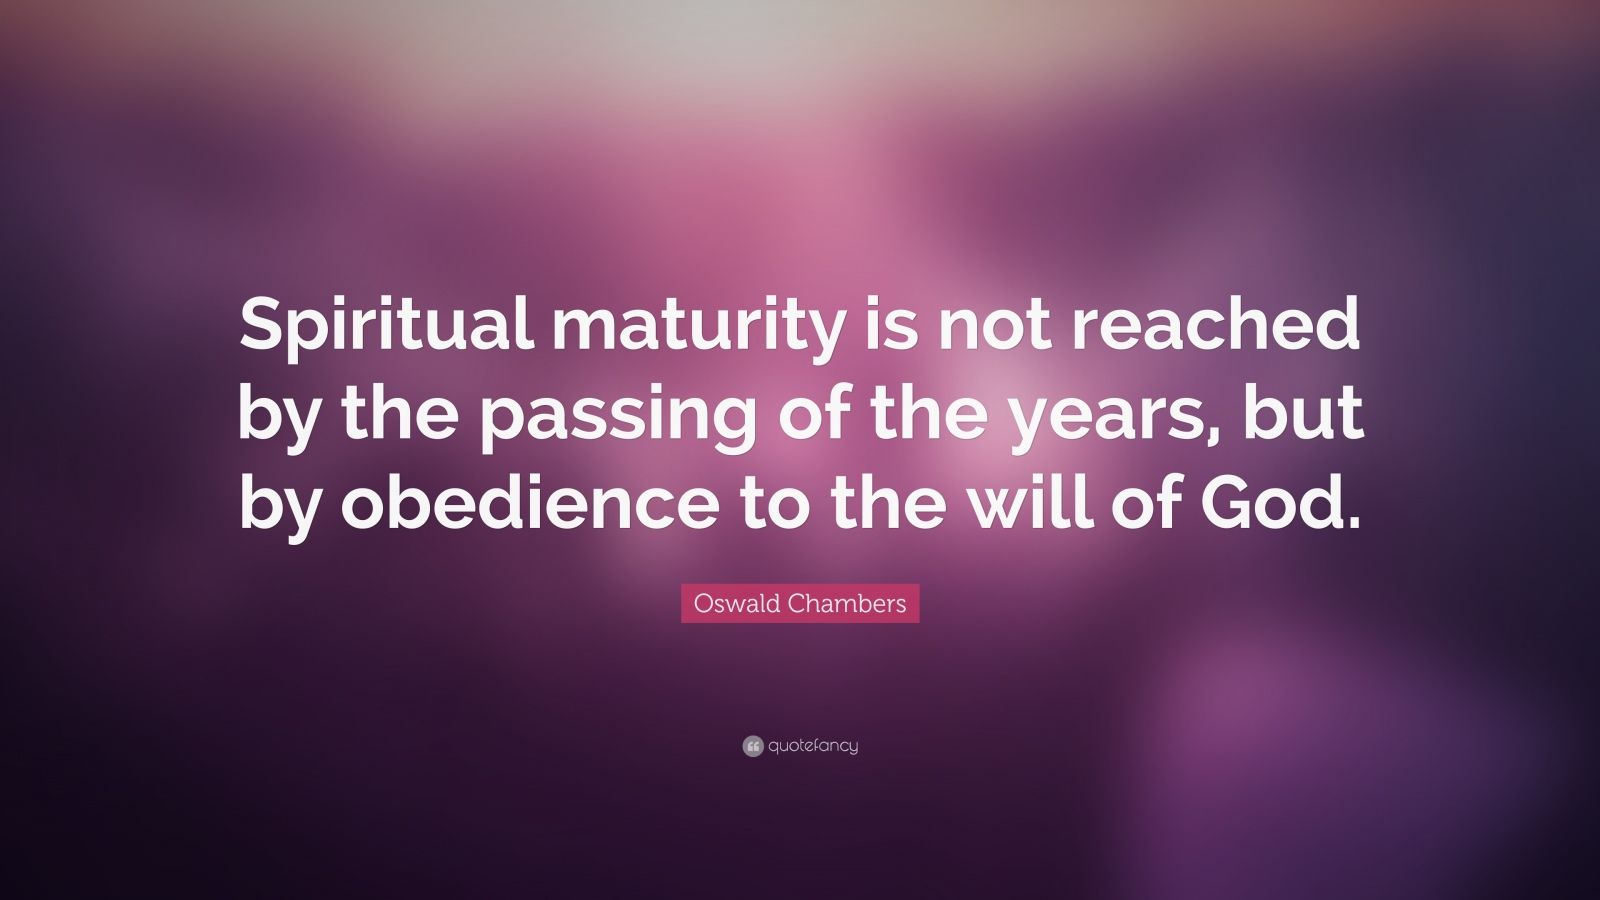 """Oswald Chambers Quote: """"Spiritual maturity is not reached by the passing of the years, but by obedience to the will of God."""""""